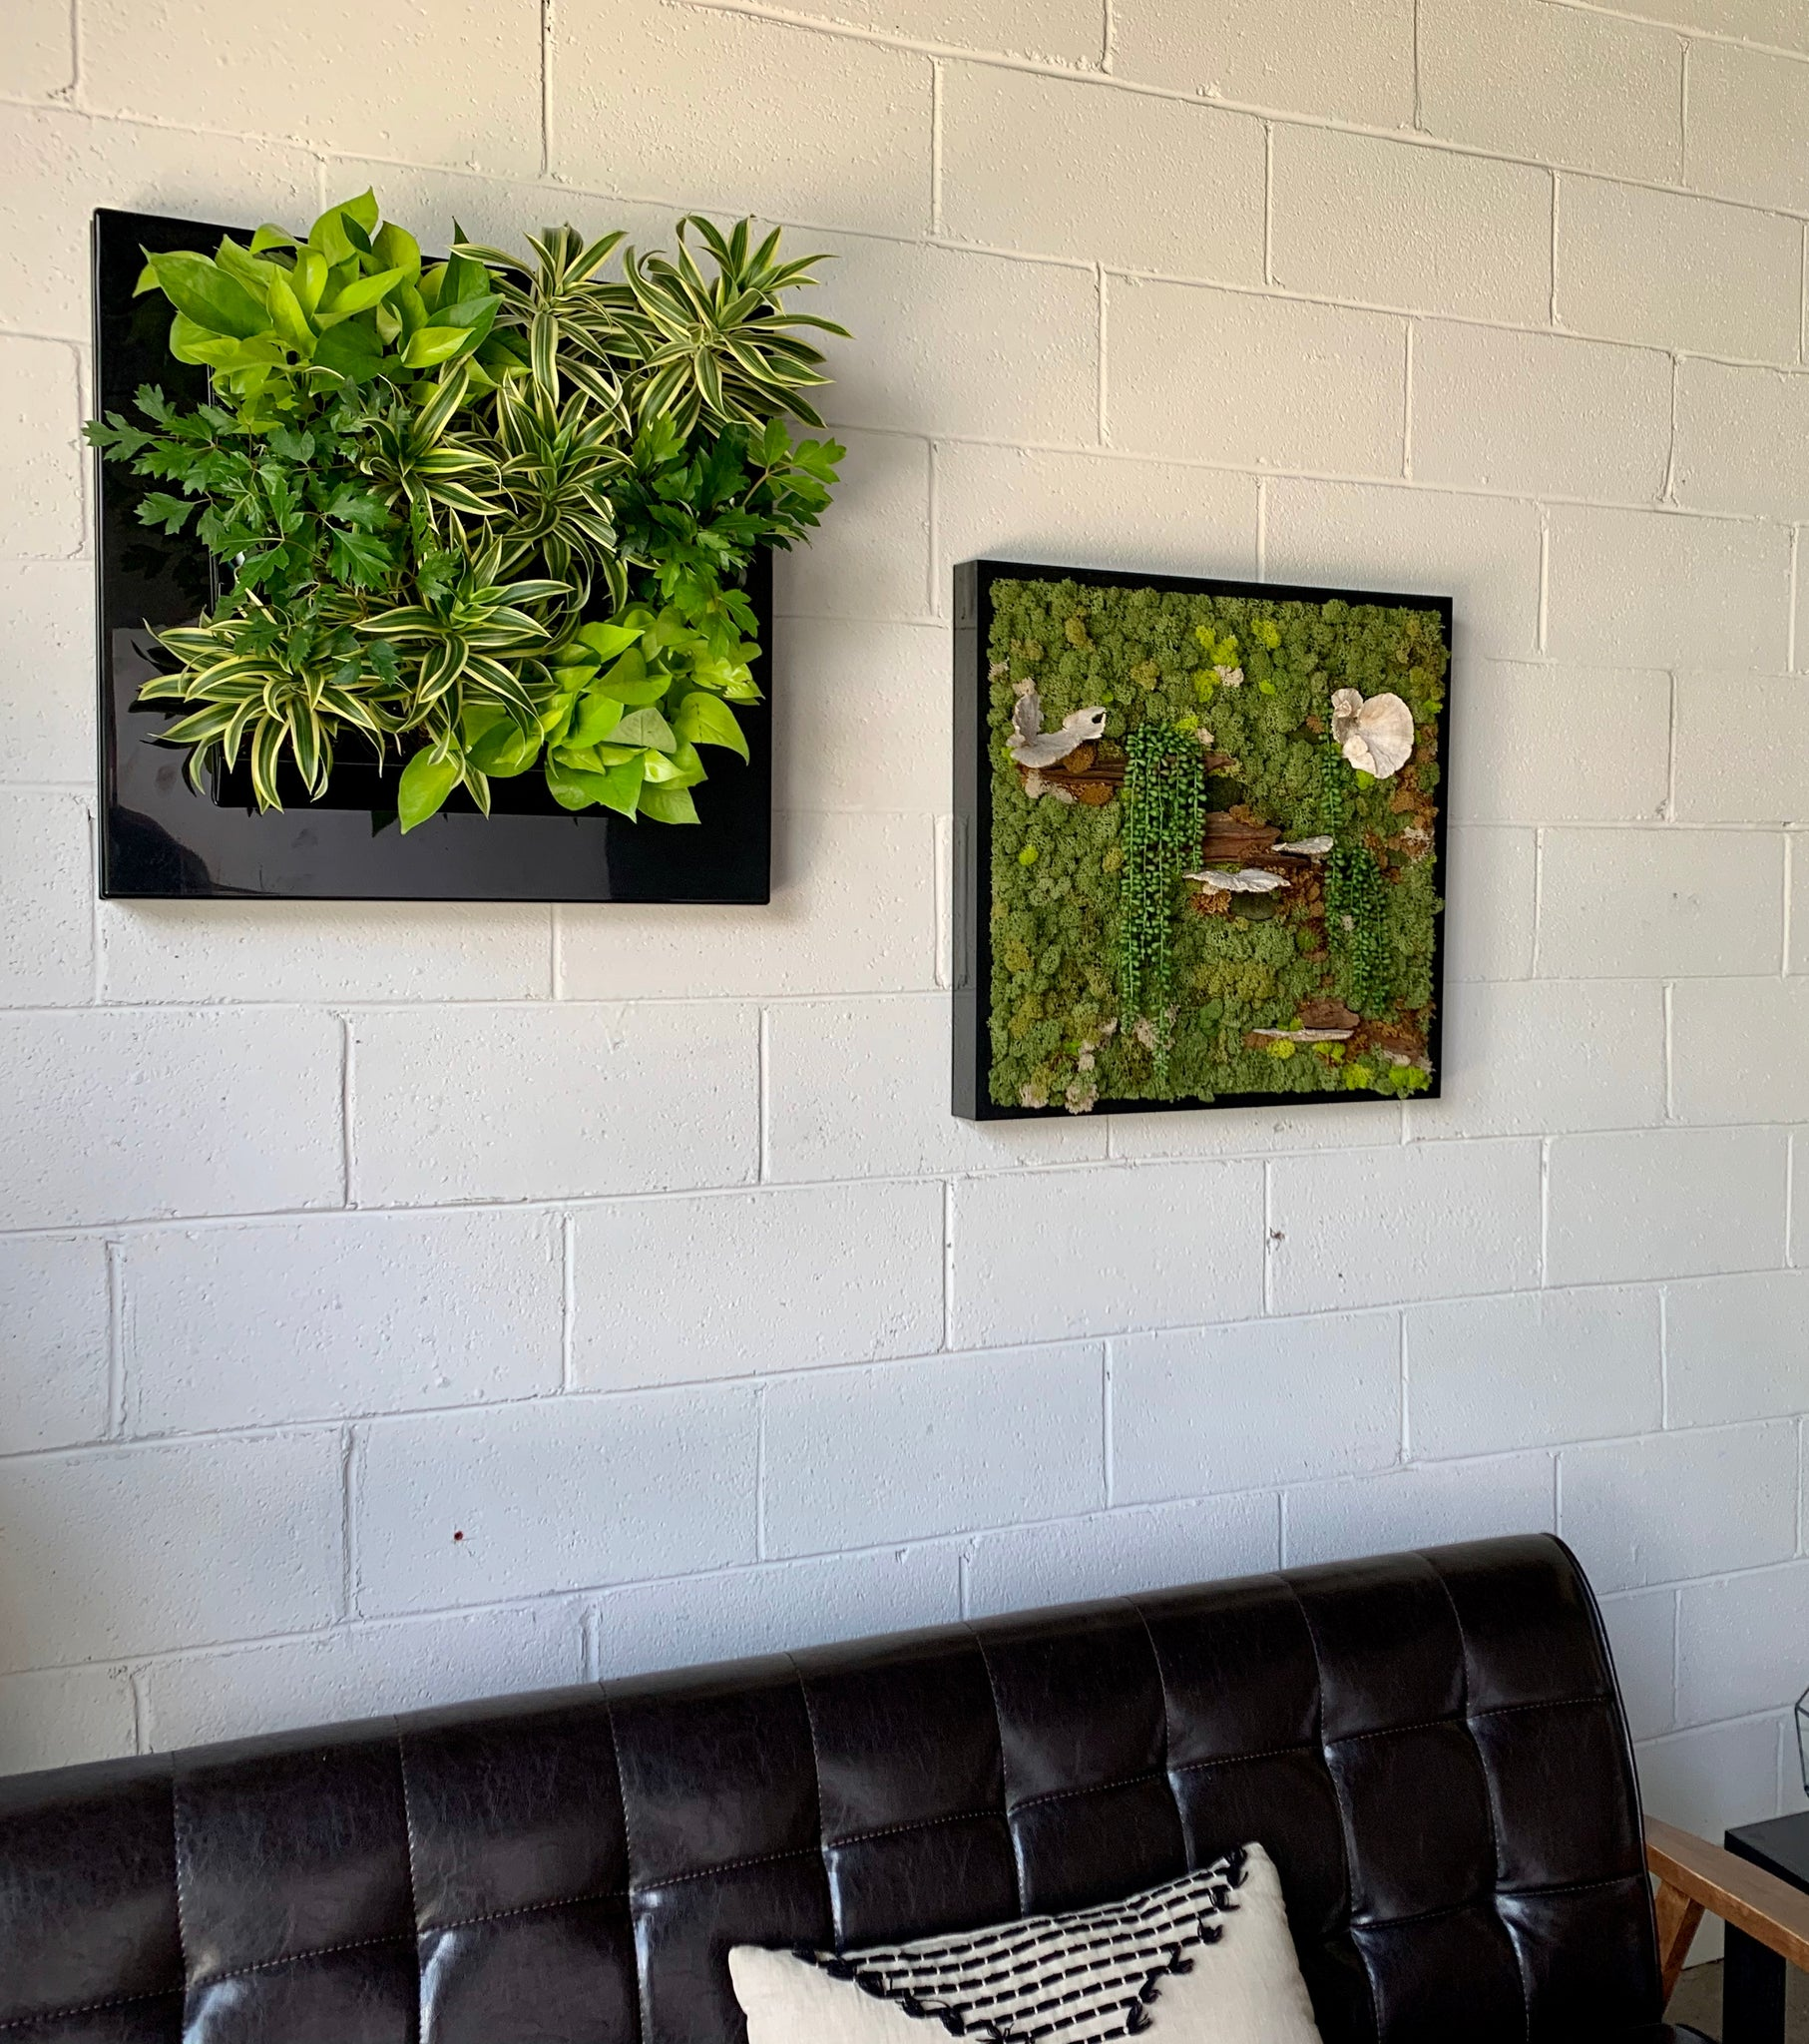 A small, black framed, live plant wall and a small, black framed moss wall in an office lobby.